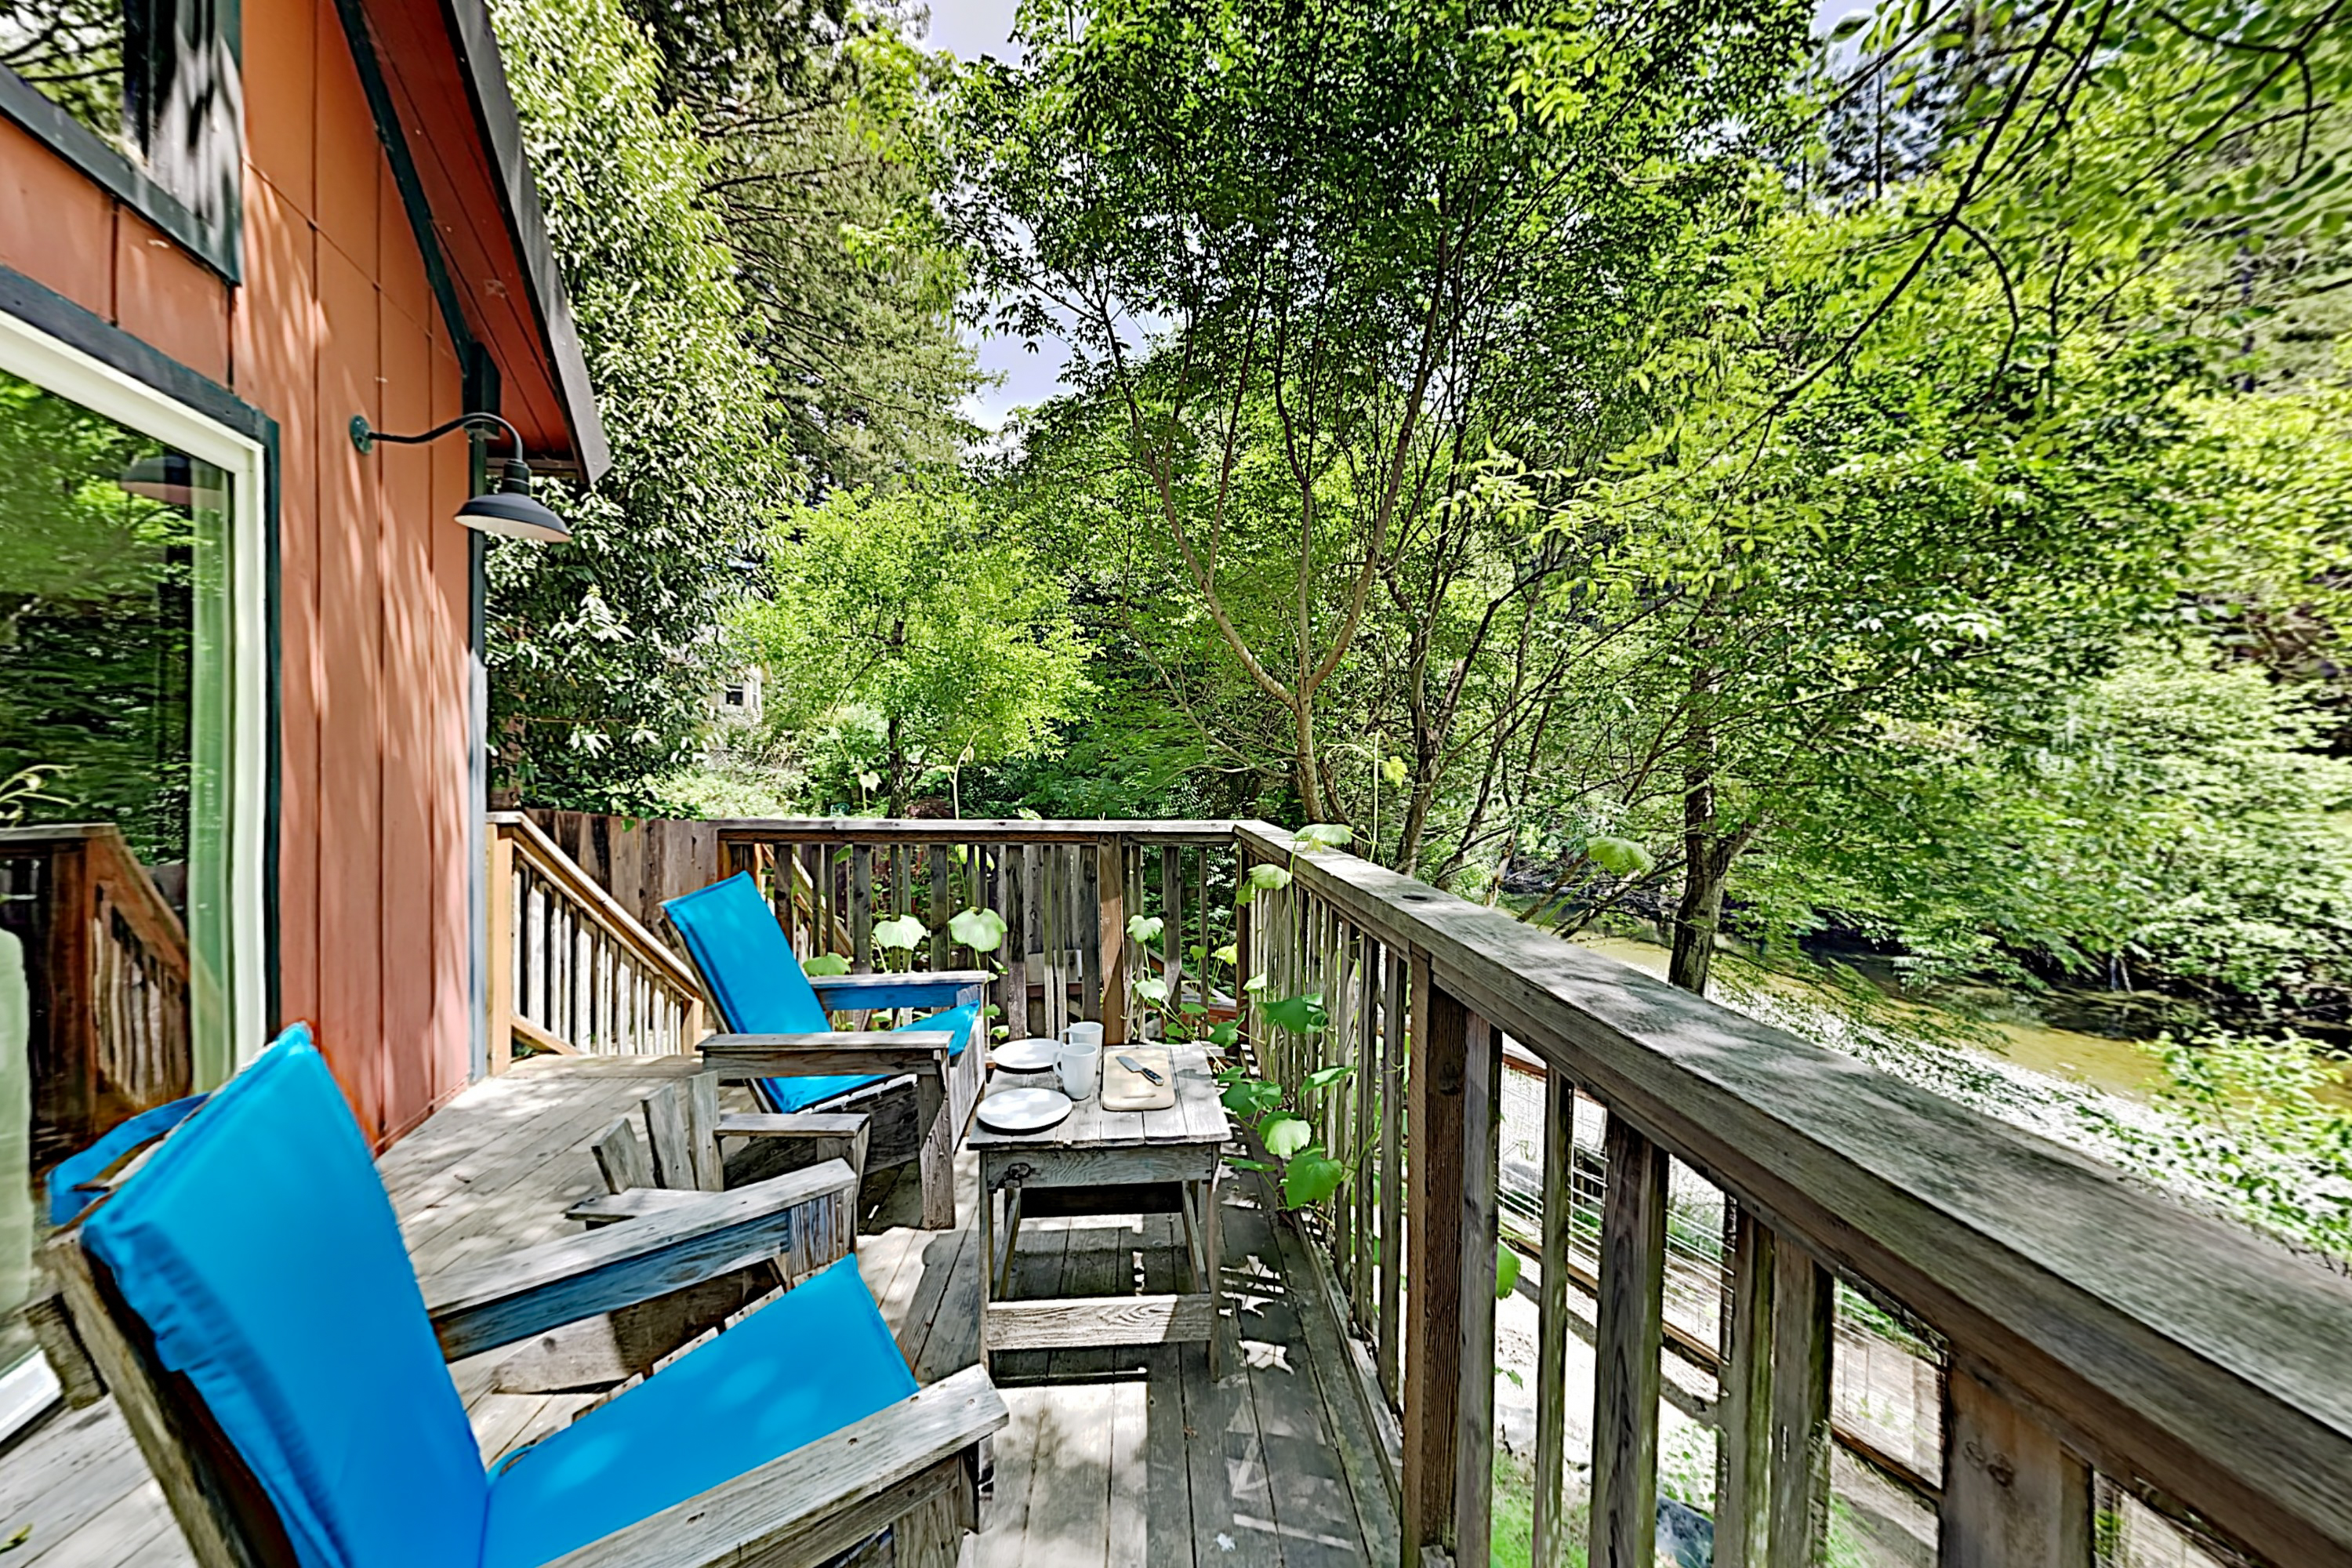 Cazadero CA Vacation Rental Welcome to Cazadero!